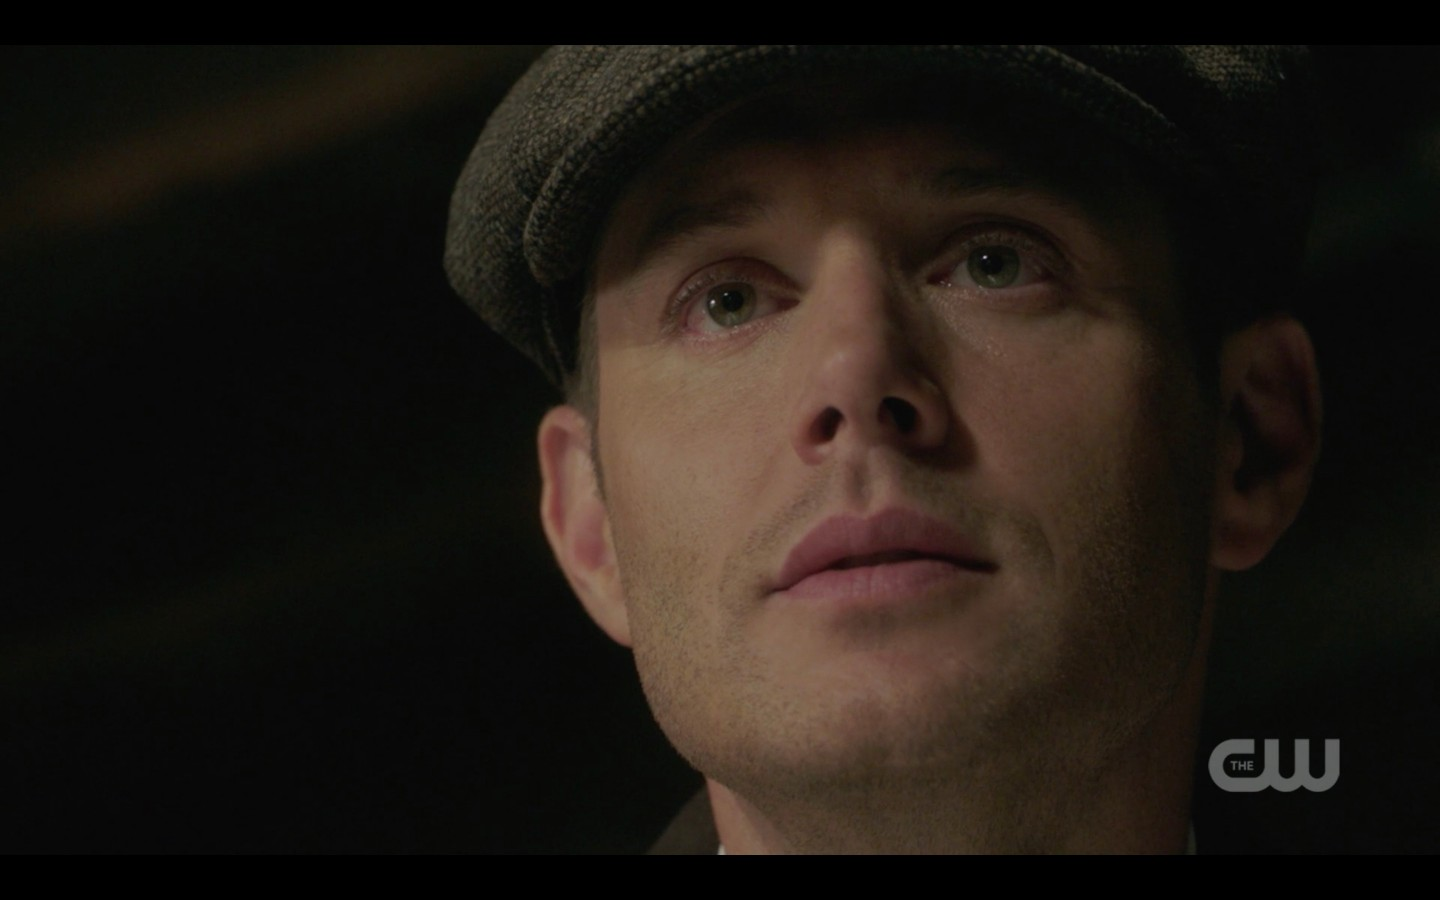 supernatural dean winchester becomes michael 1401